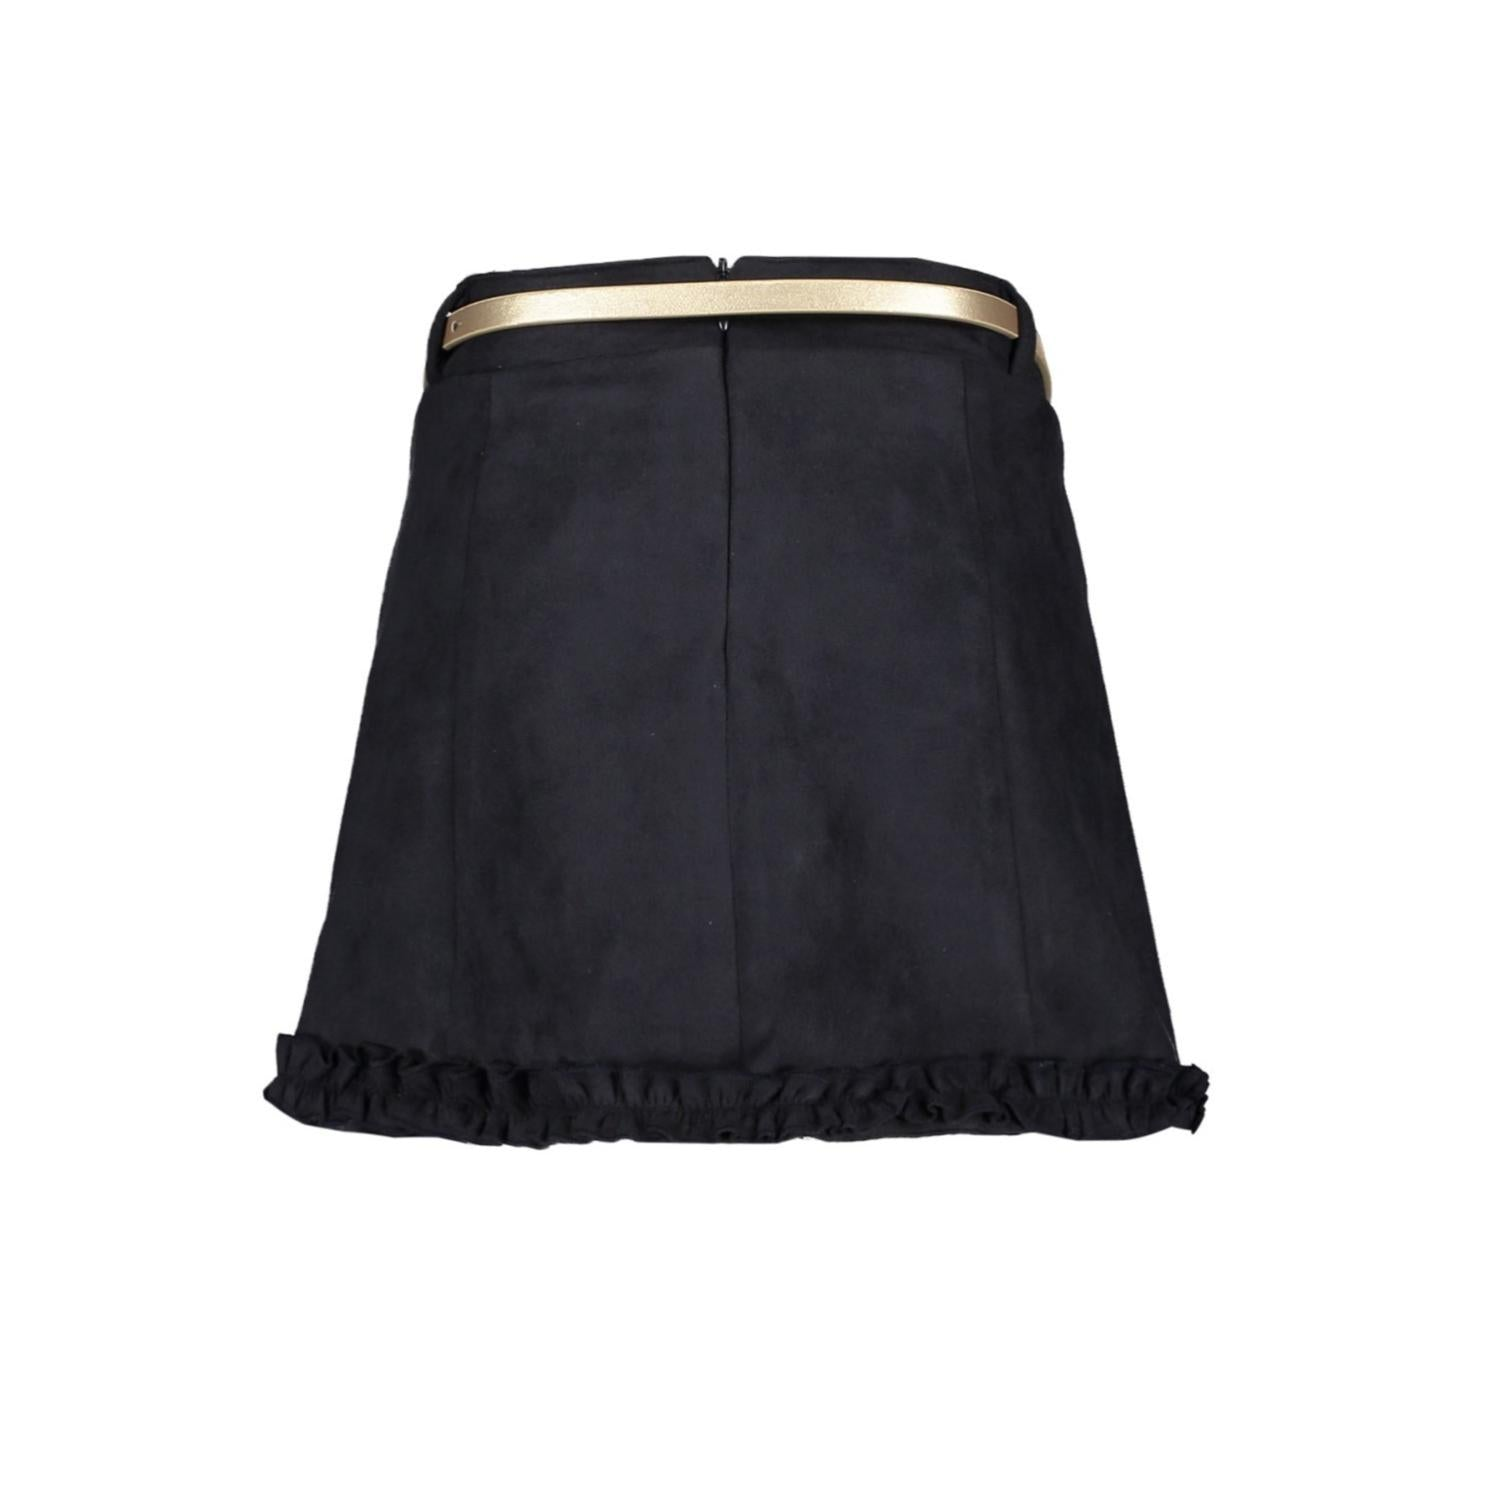 LE CHIC A LINE SUEDE LOOK SKIRT WITH ADJUSTABLE WAIST C908 5720 190